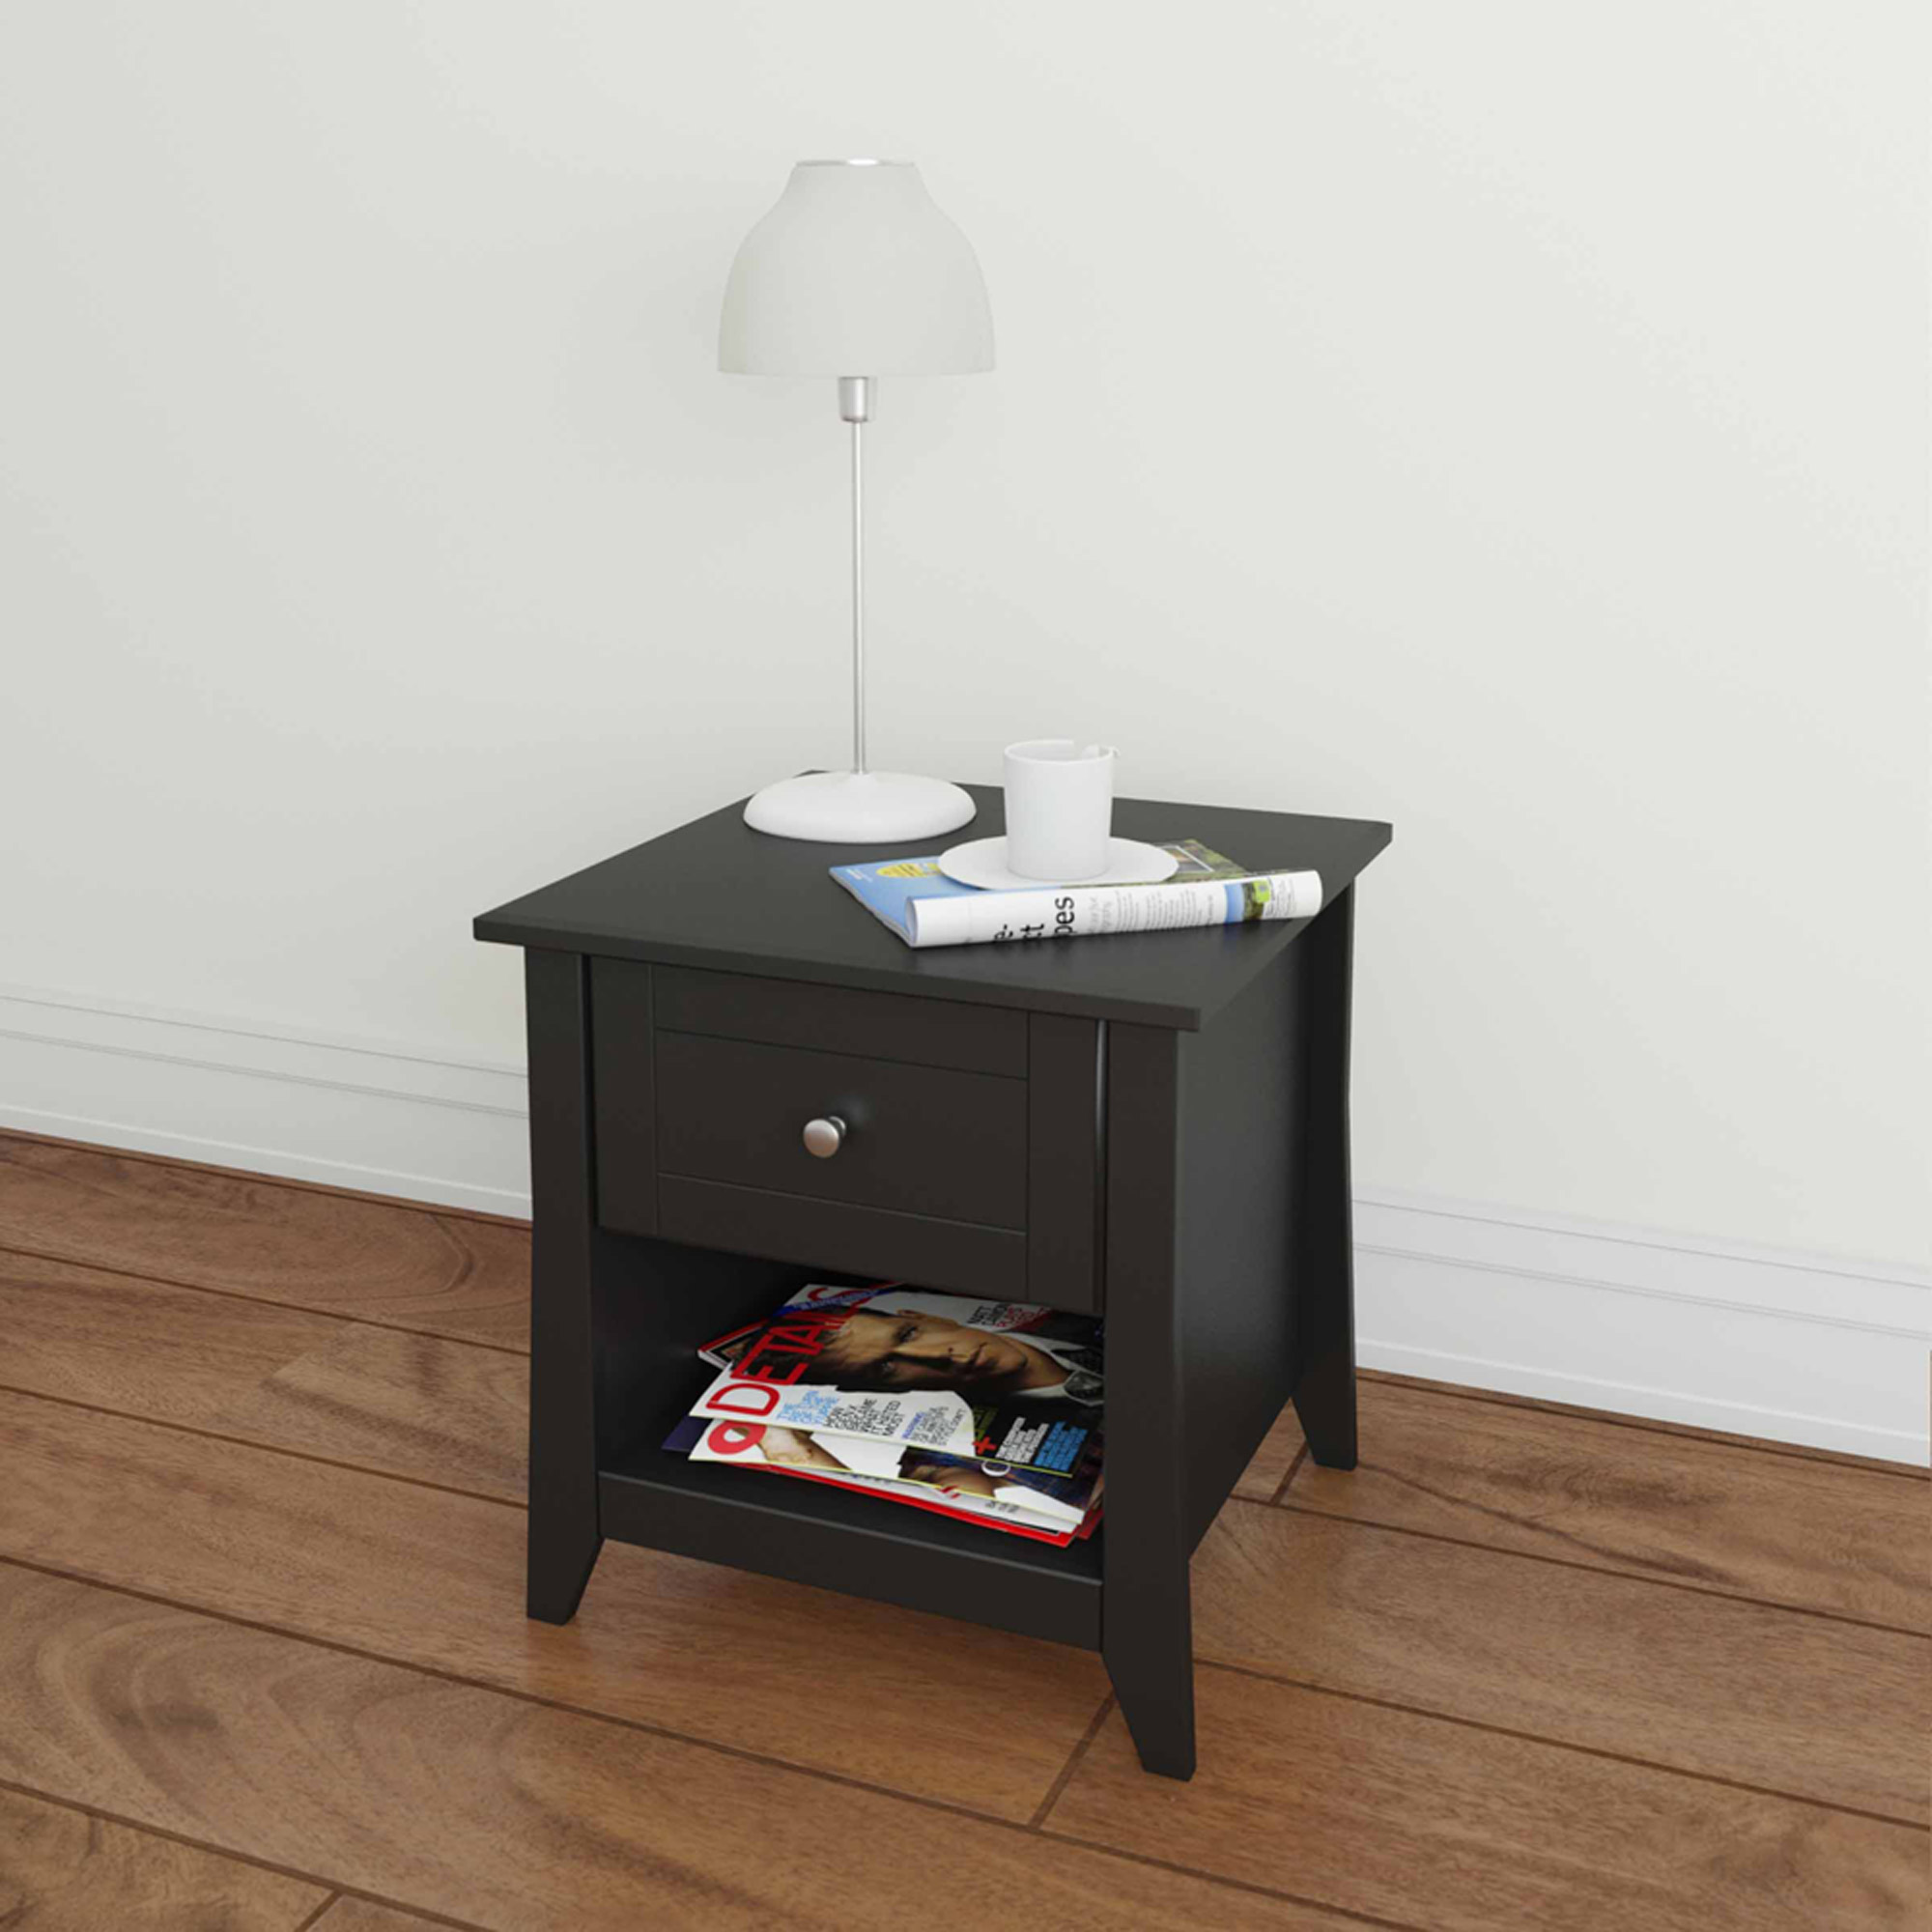 Tuxedo End Table, Black